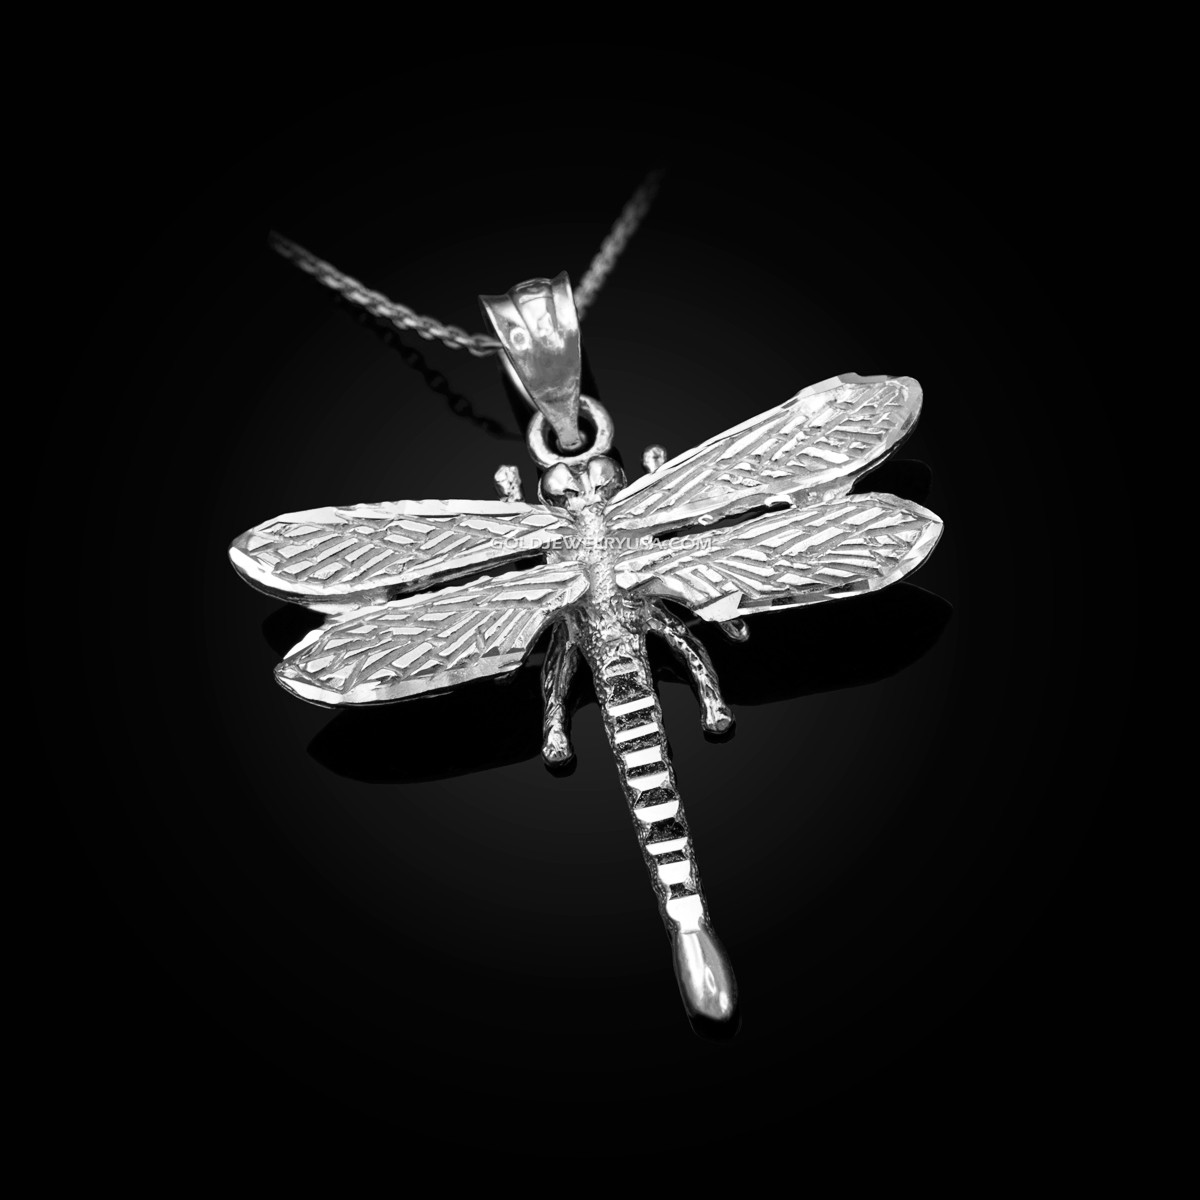 e251fd326 Solid White Gold Dragonfly DC Pendant Necklace